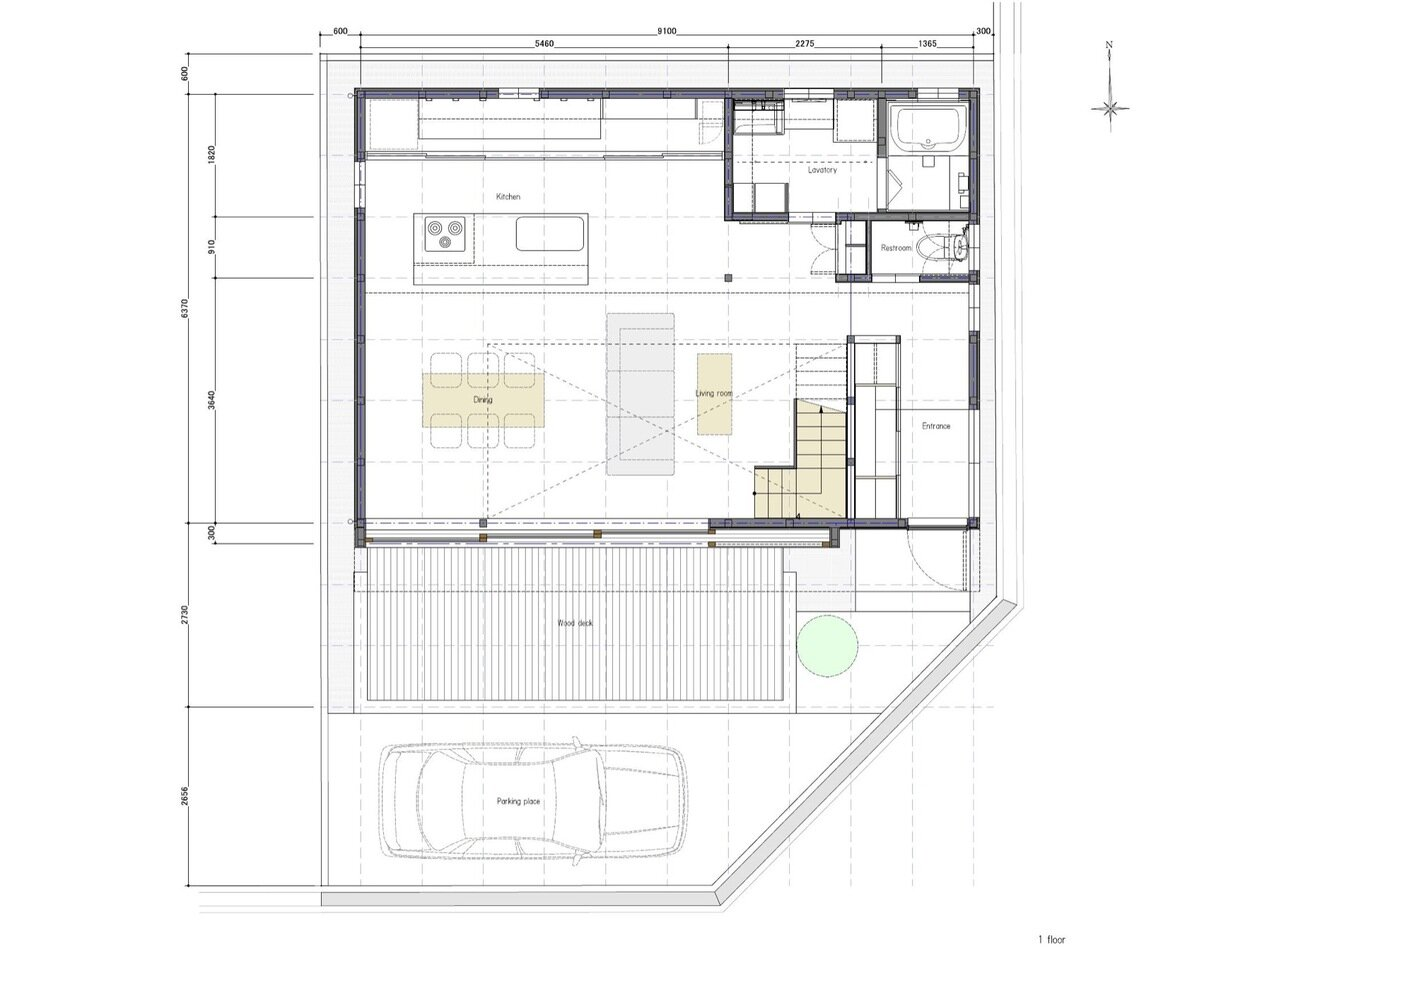 S-House - Coil Kazuteru Matumura Architects - Japan - Floor Plan 1 - Humble Homes